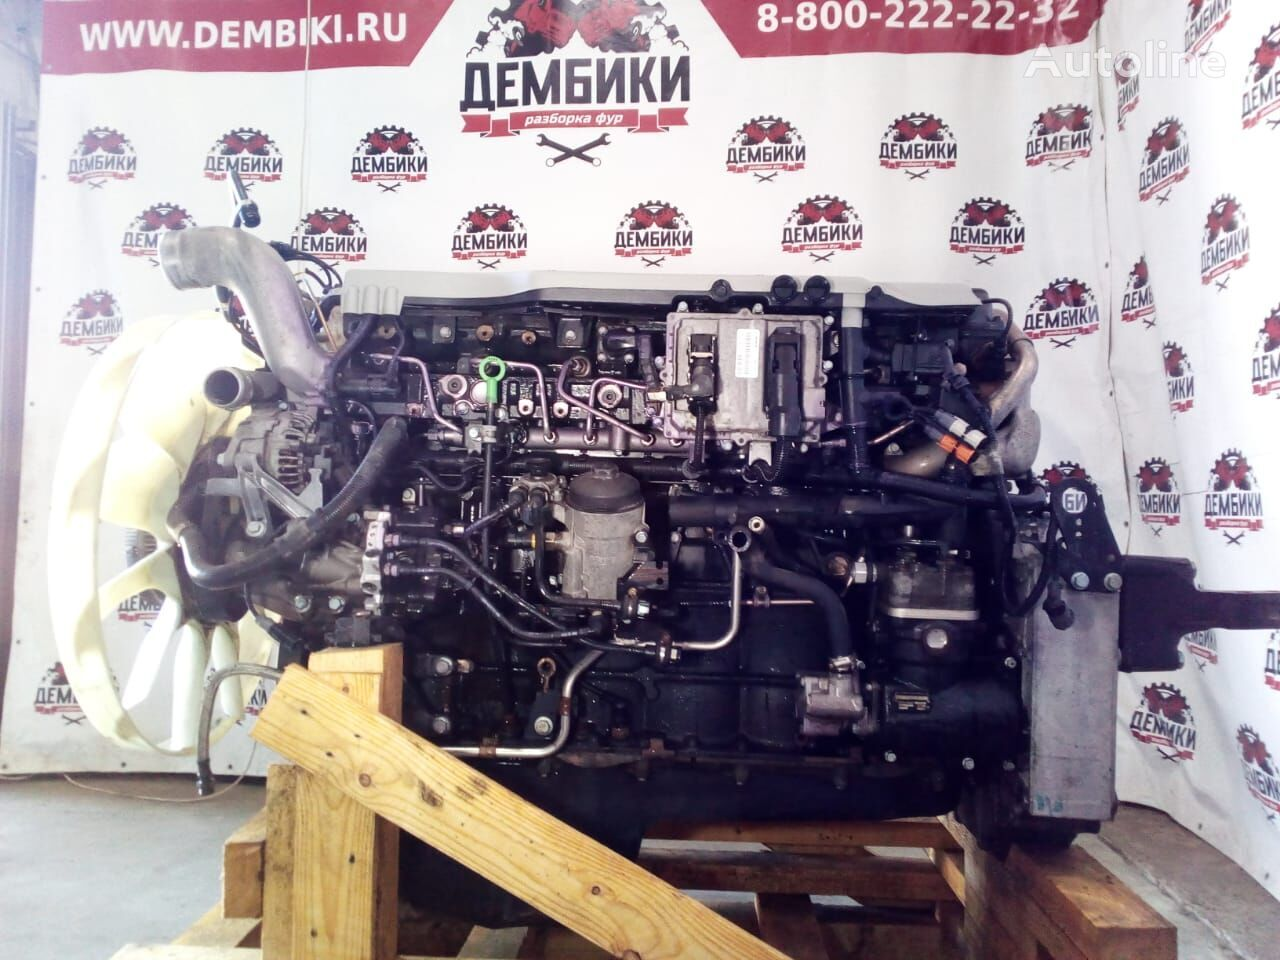 D2066LF70 400HP EURO4 engine for MAN TGS truck